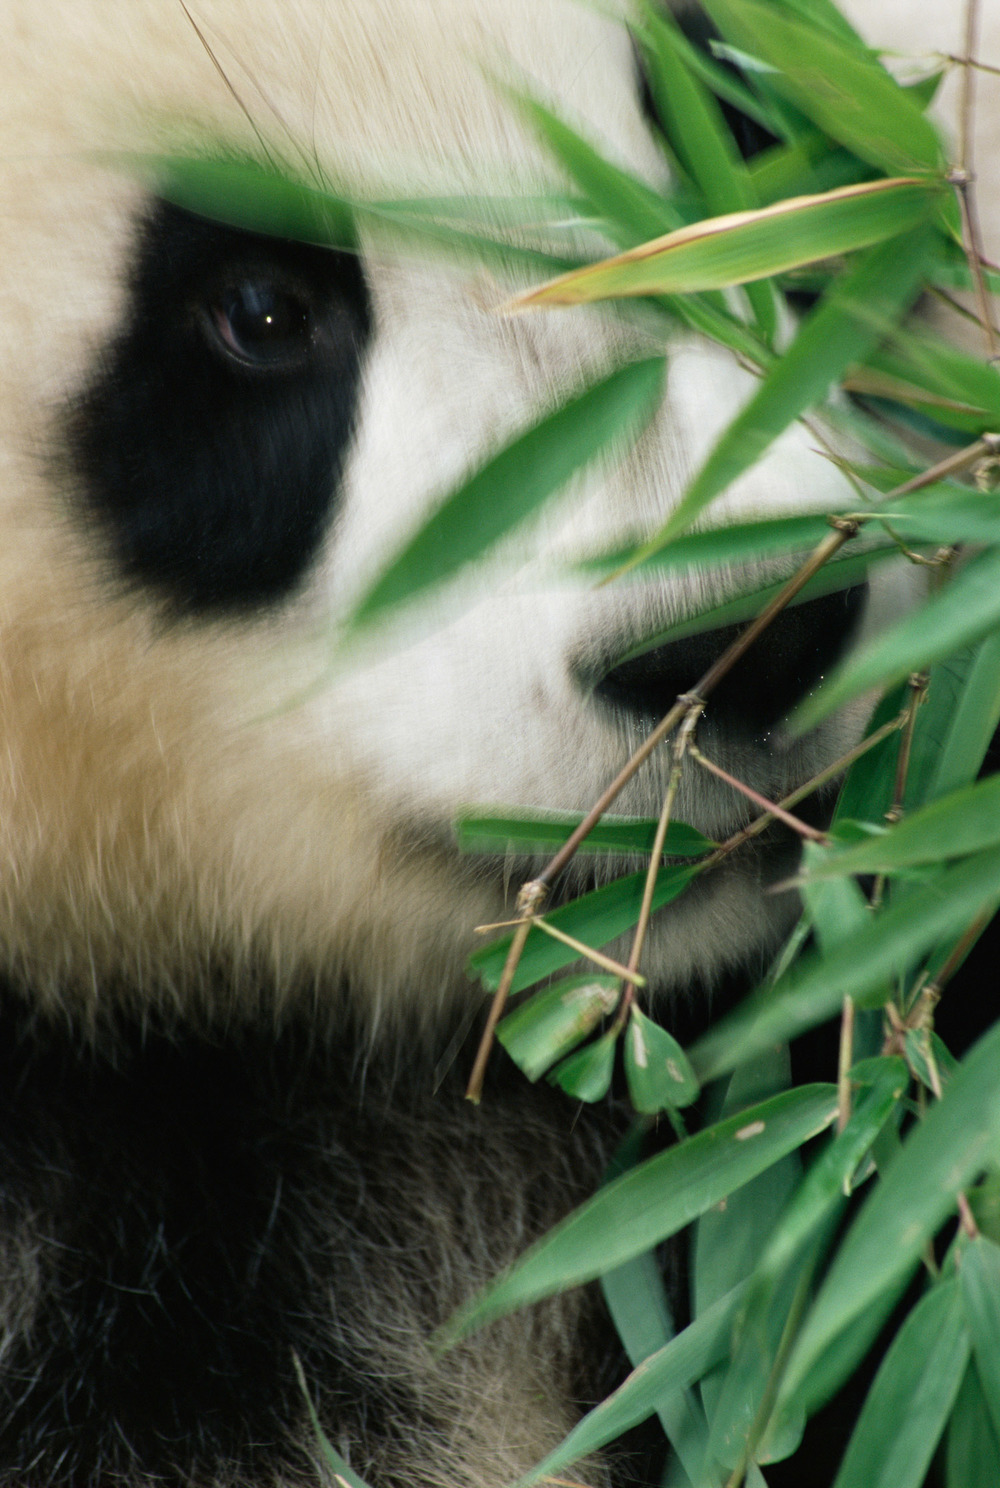 Giant panda with bamboo portrait (captive), Wolong National Nature Reserve, Sichuan, China